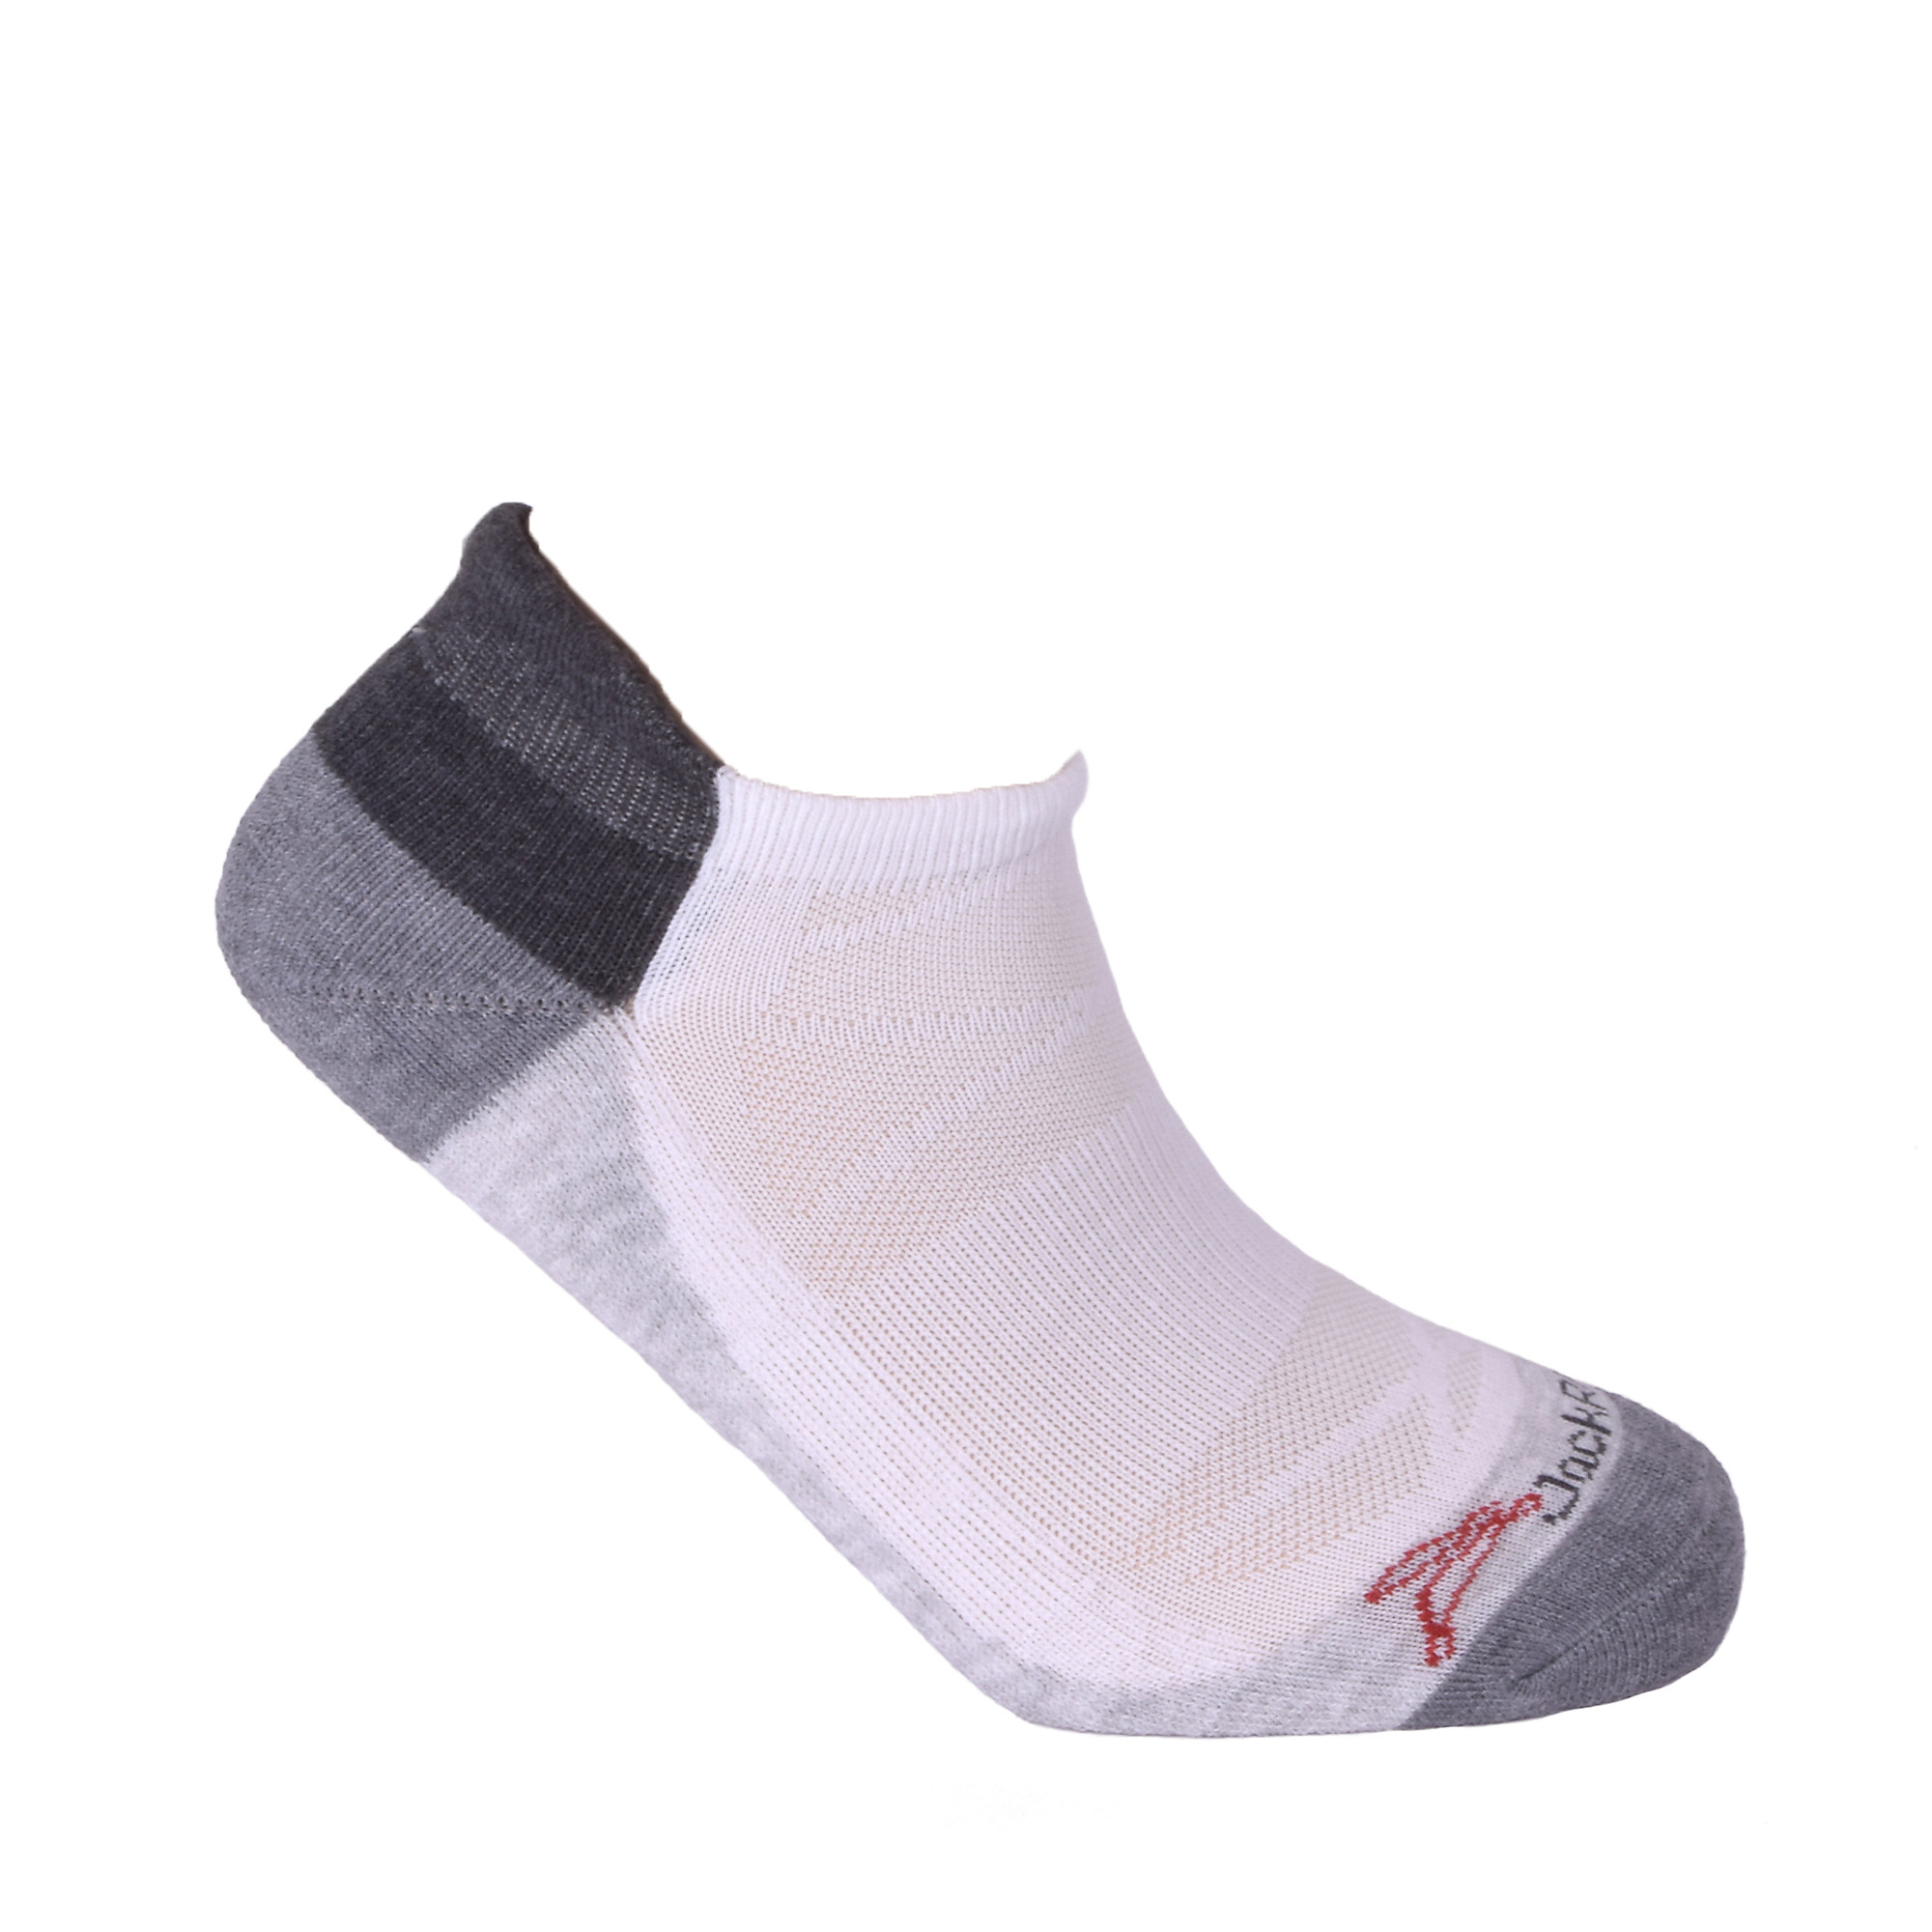 JackRabbit No Show Tab Cushion Performance Running Sock, , large, image 3